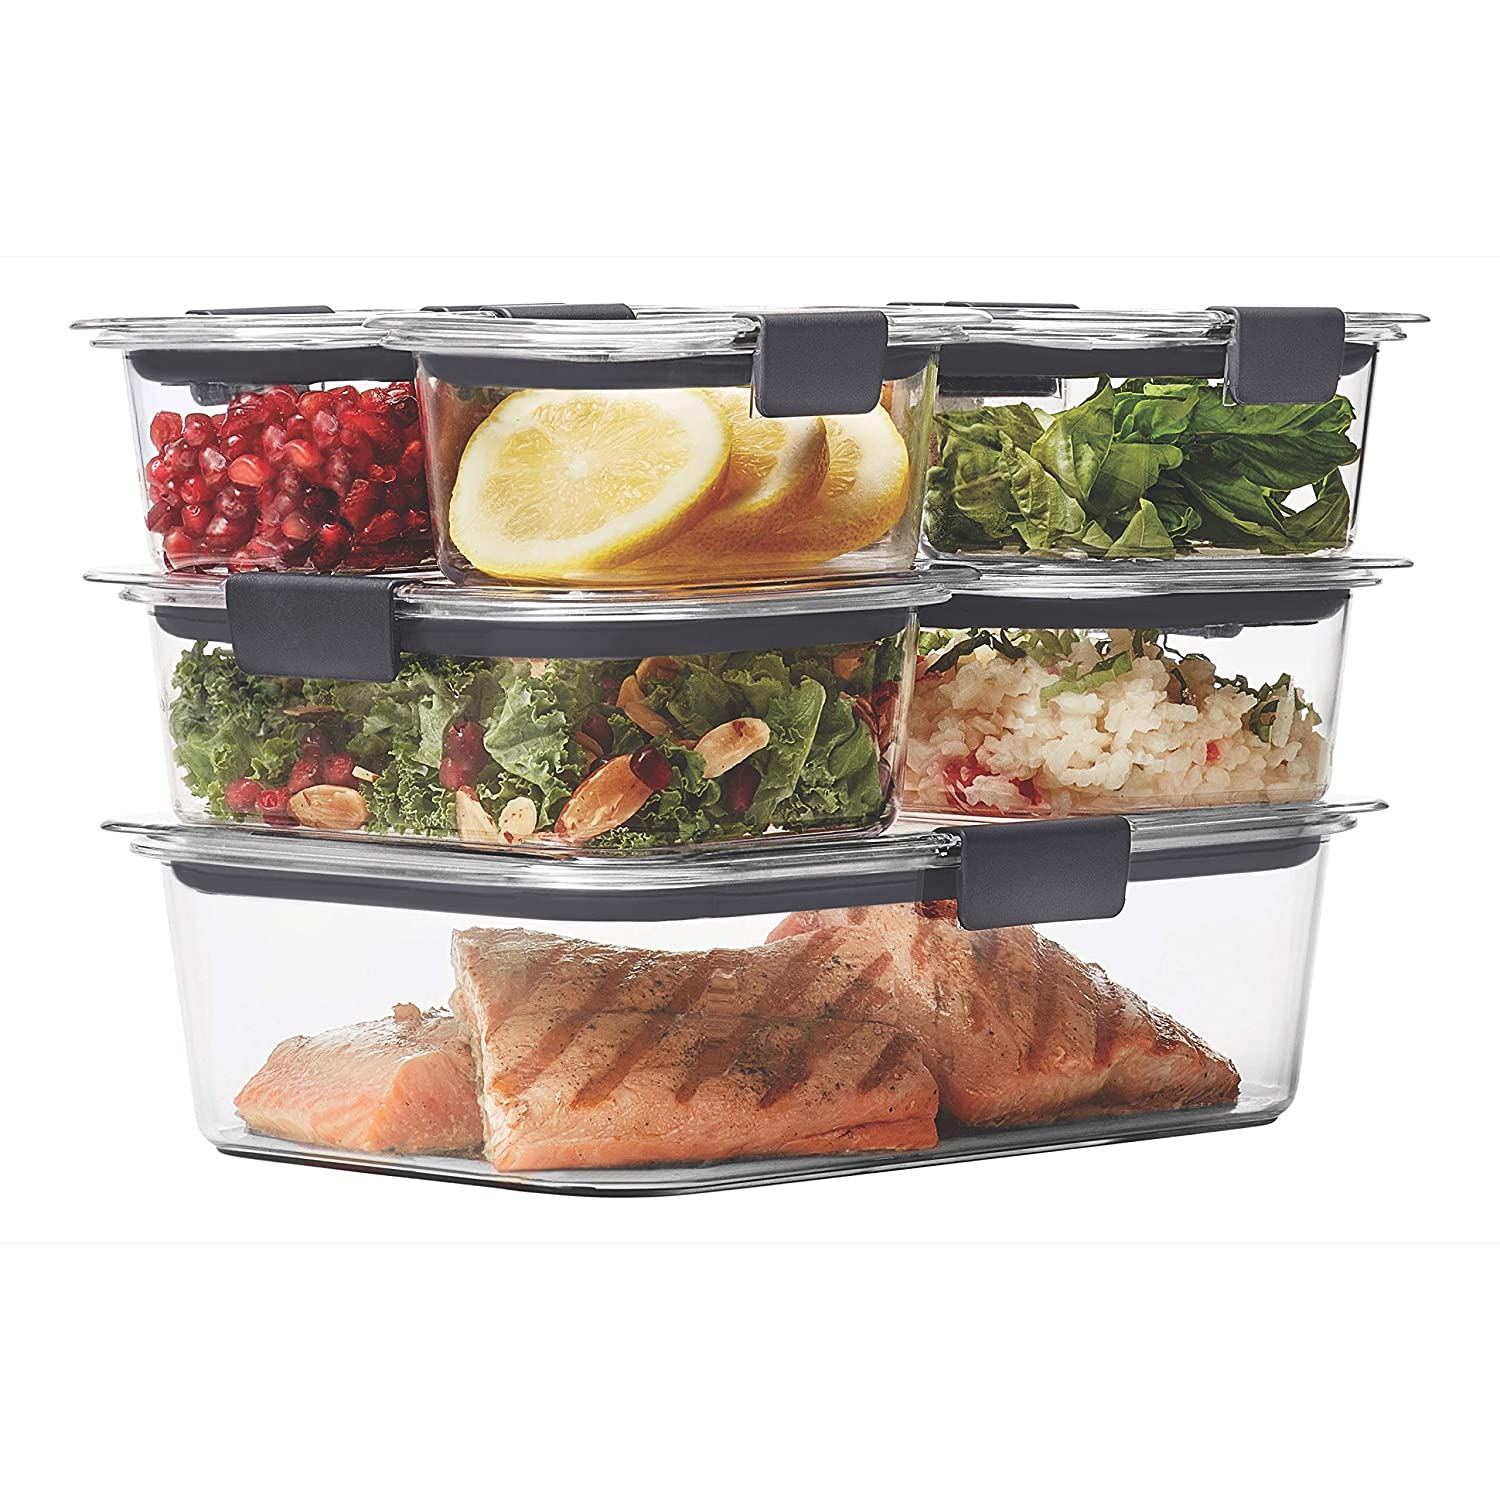 Rubbermaid Brilliance Food Storage Container, 14-Piece